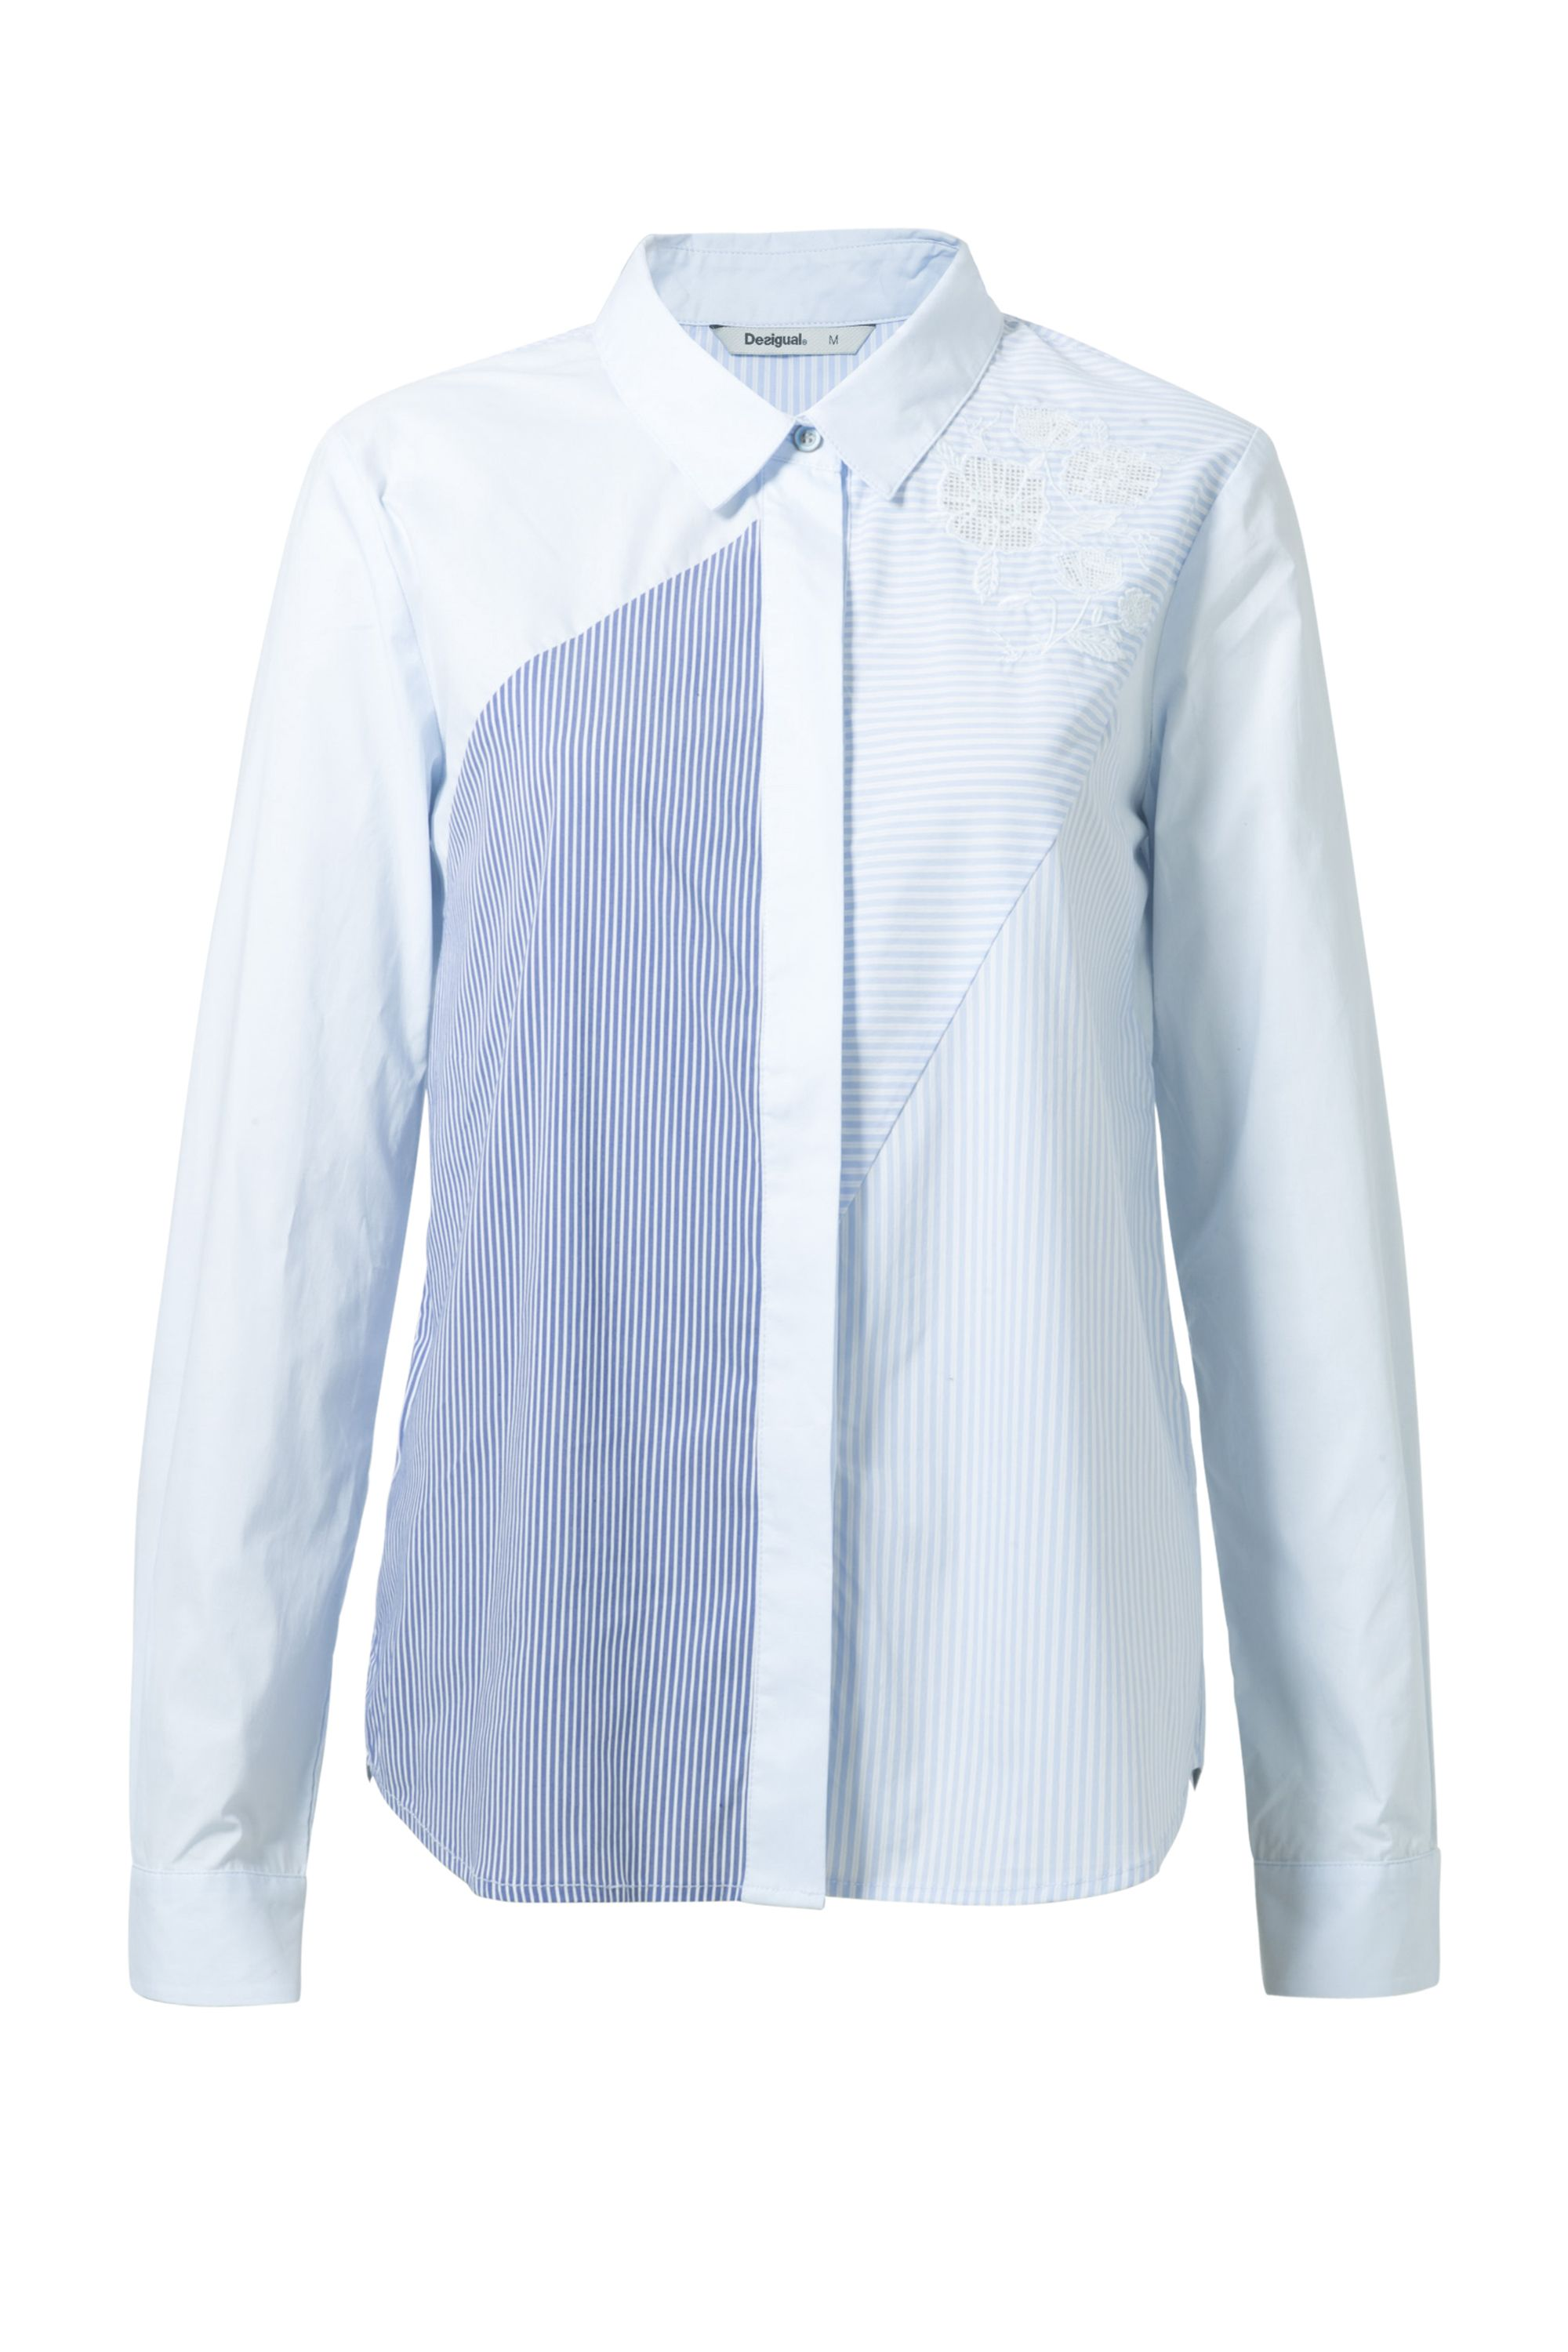 Desigual Ingun Shirt, Blue